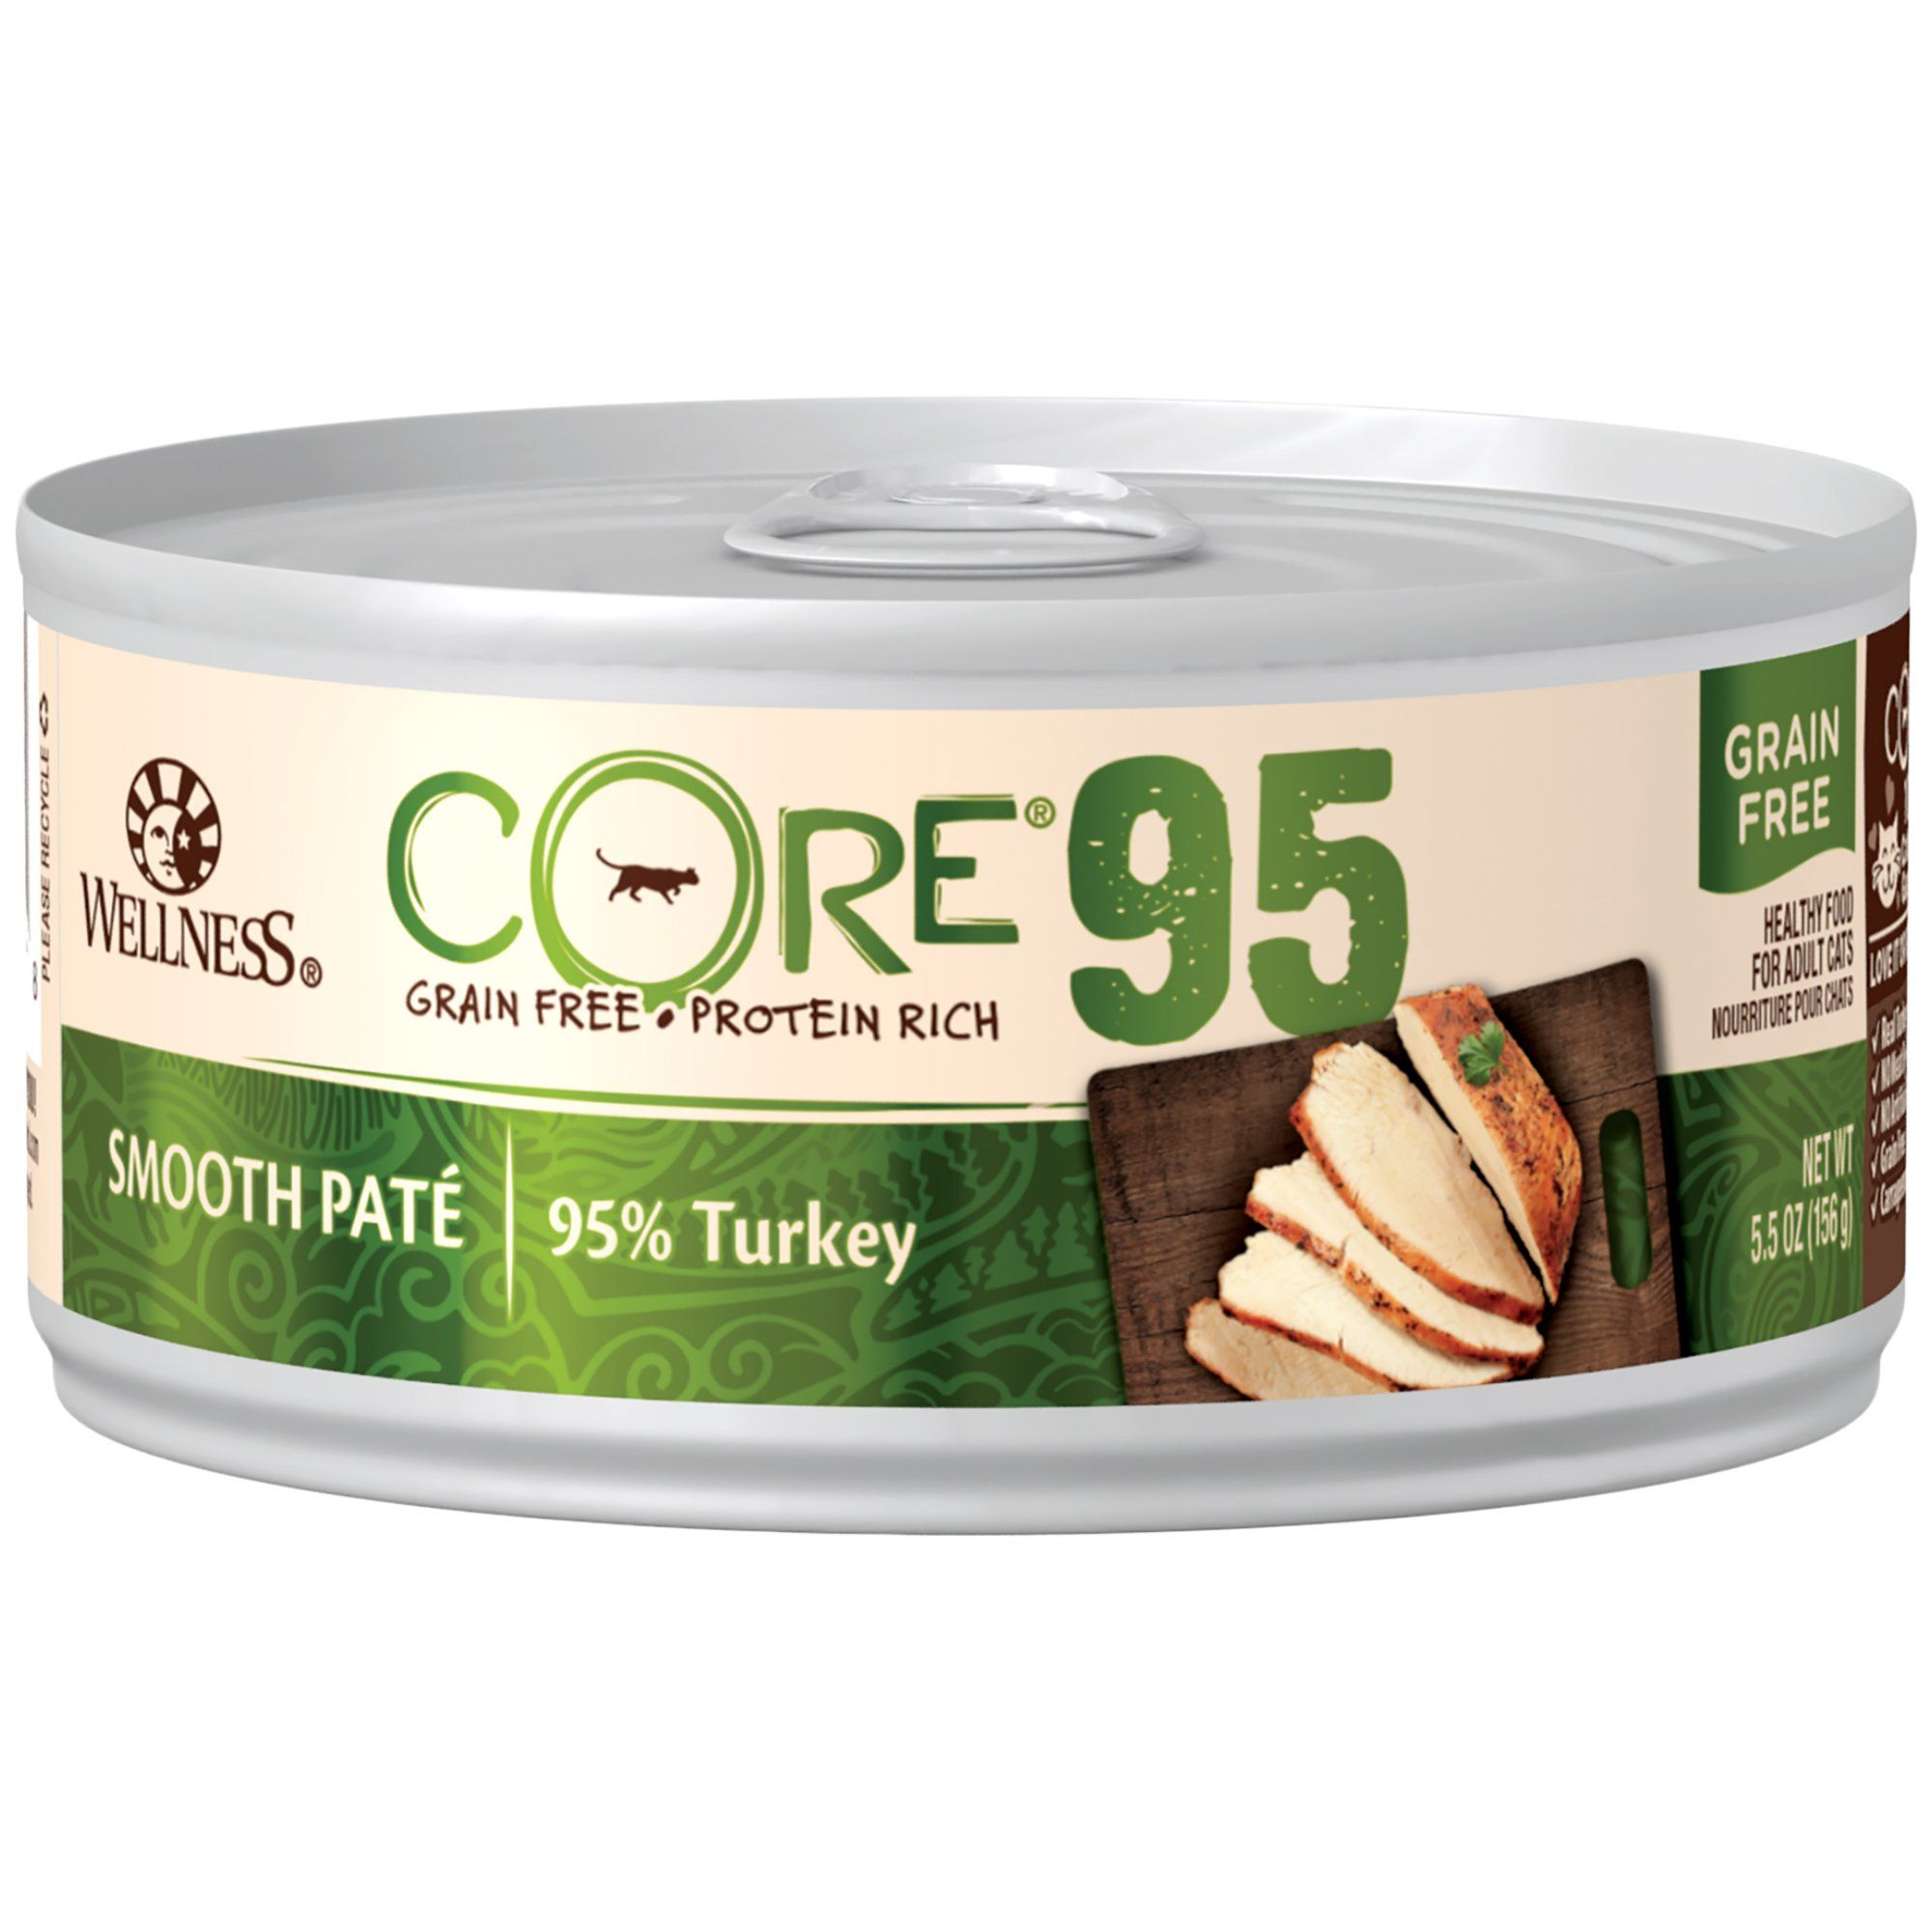 Wellness core 95 natural grain free turkey wet canned cat